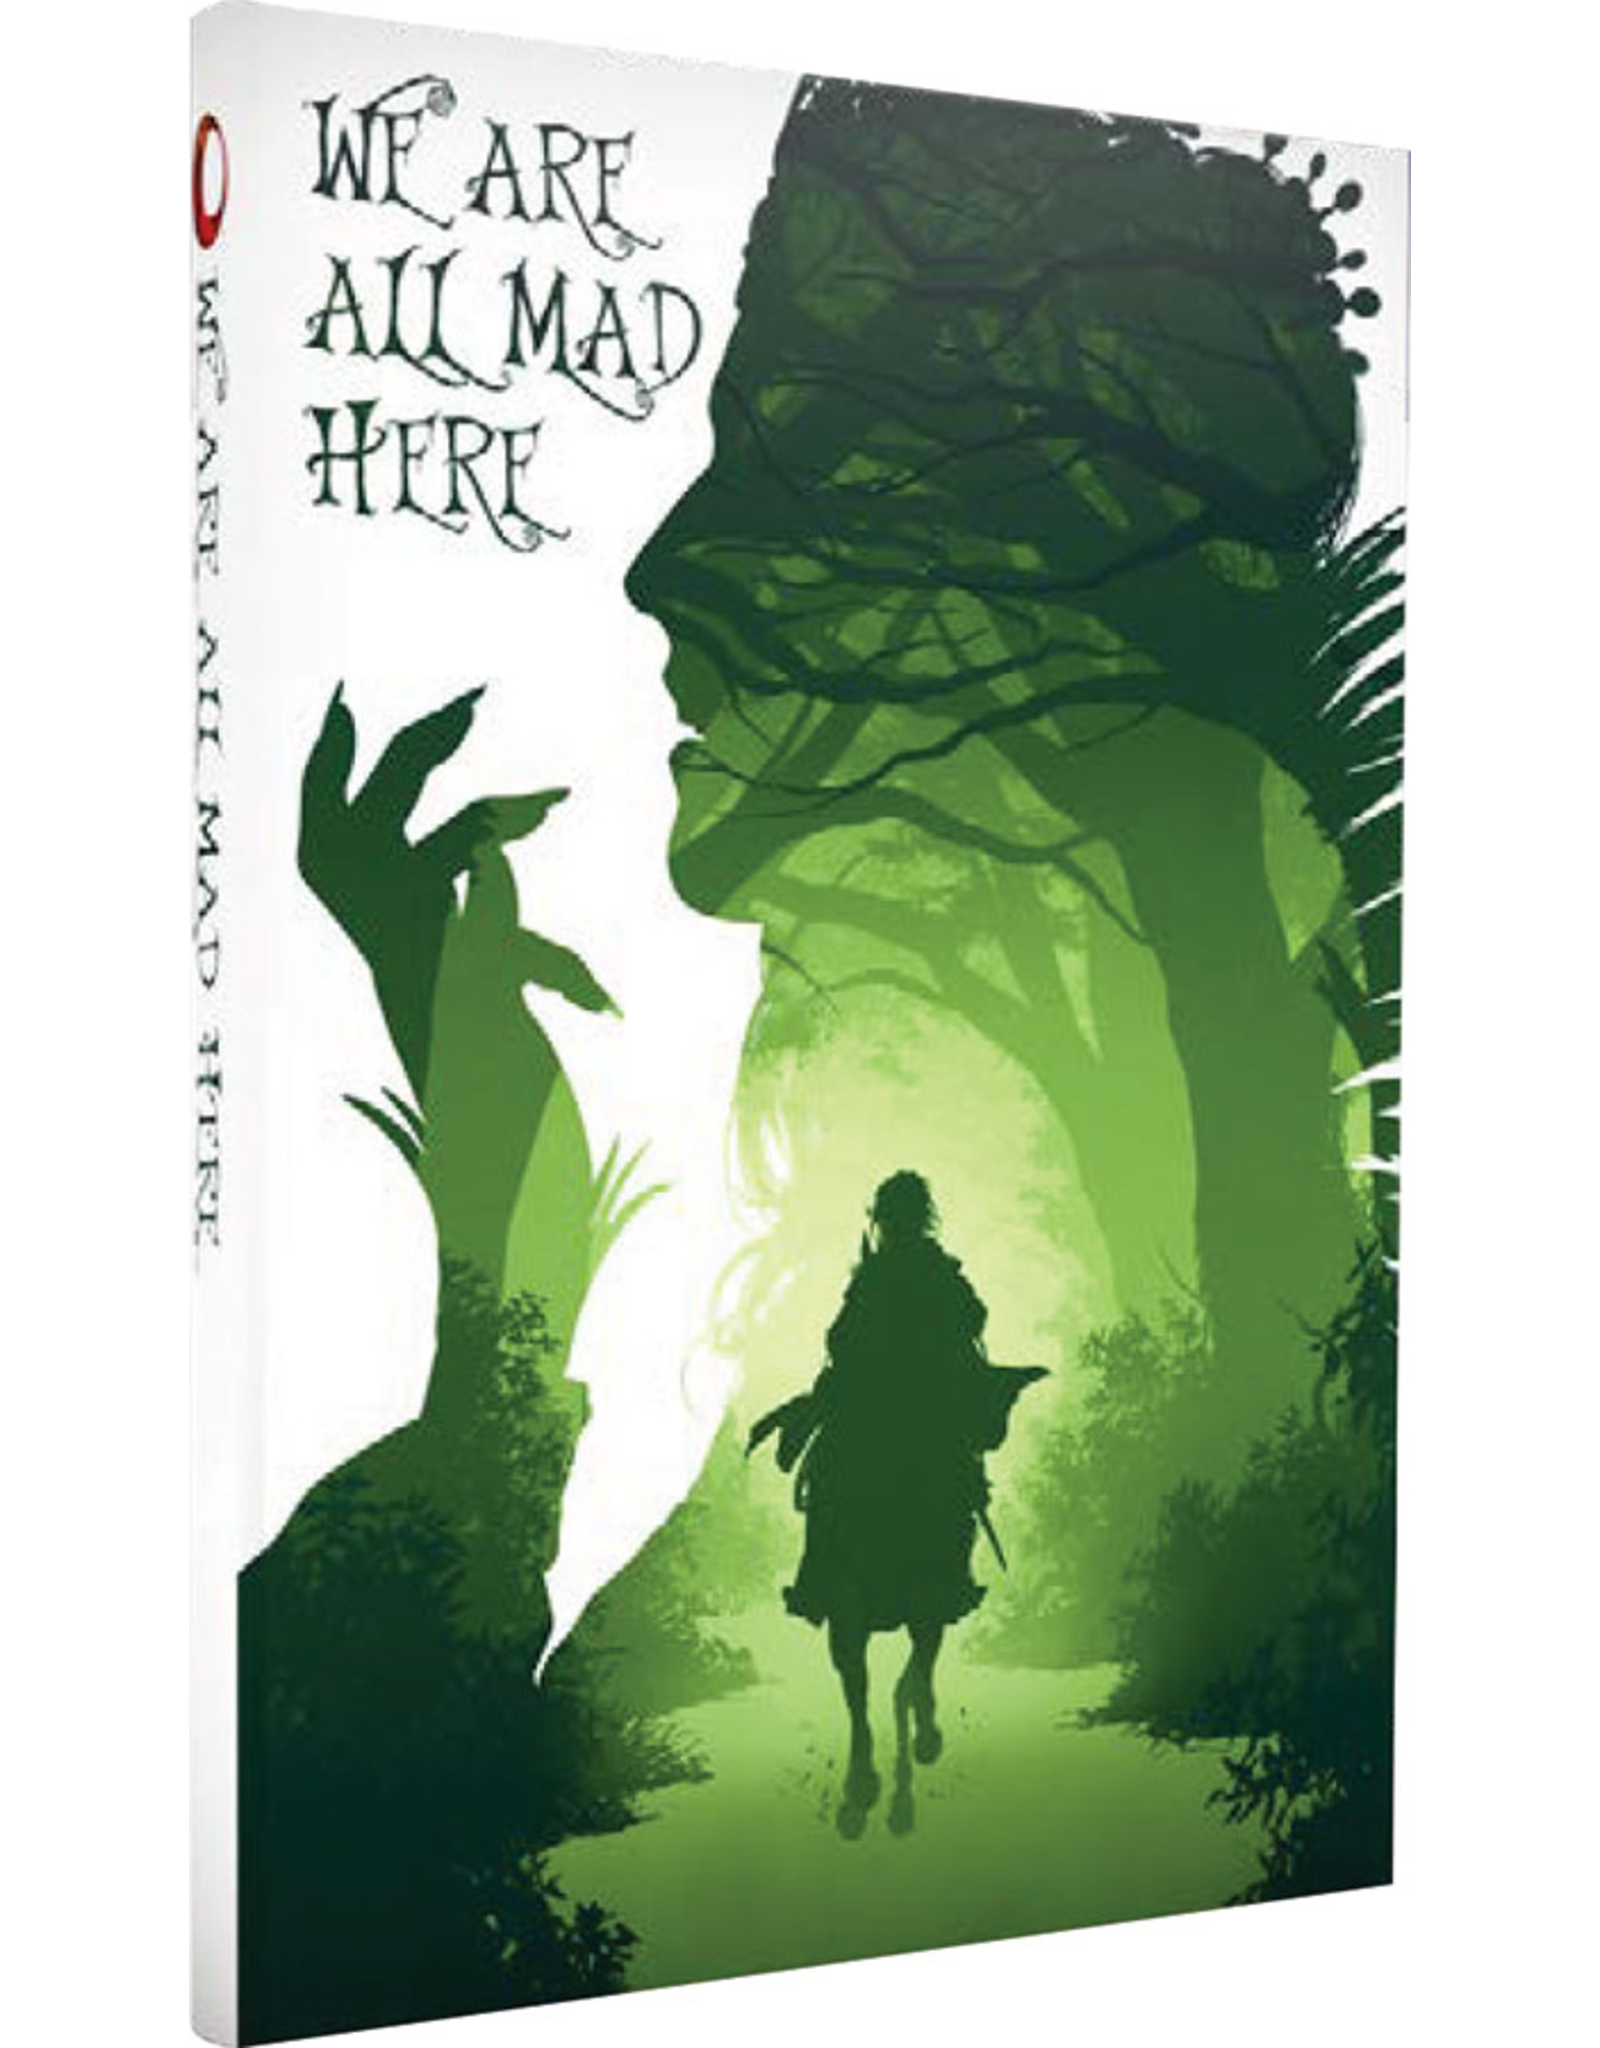 Monte Cook Games Cypher System RPG 2nd Edition: We Are All Mad Here